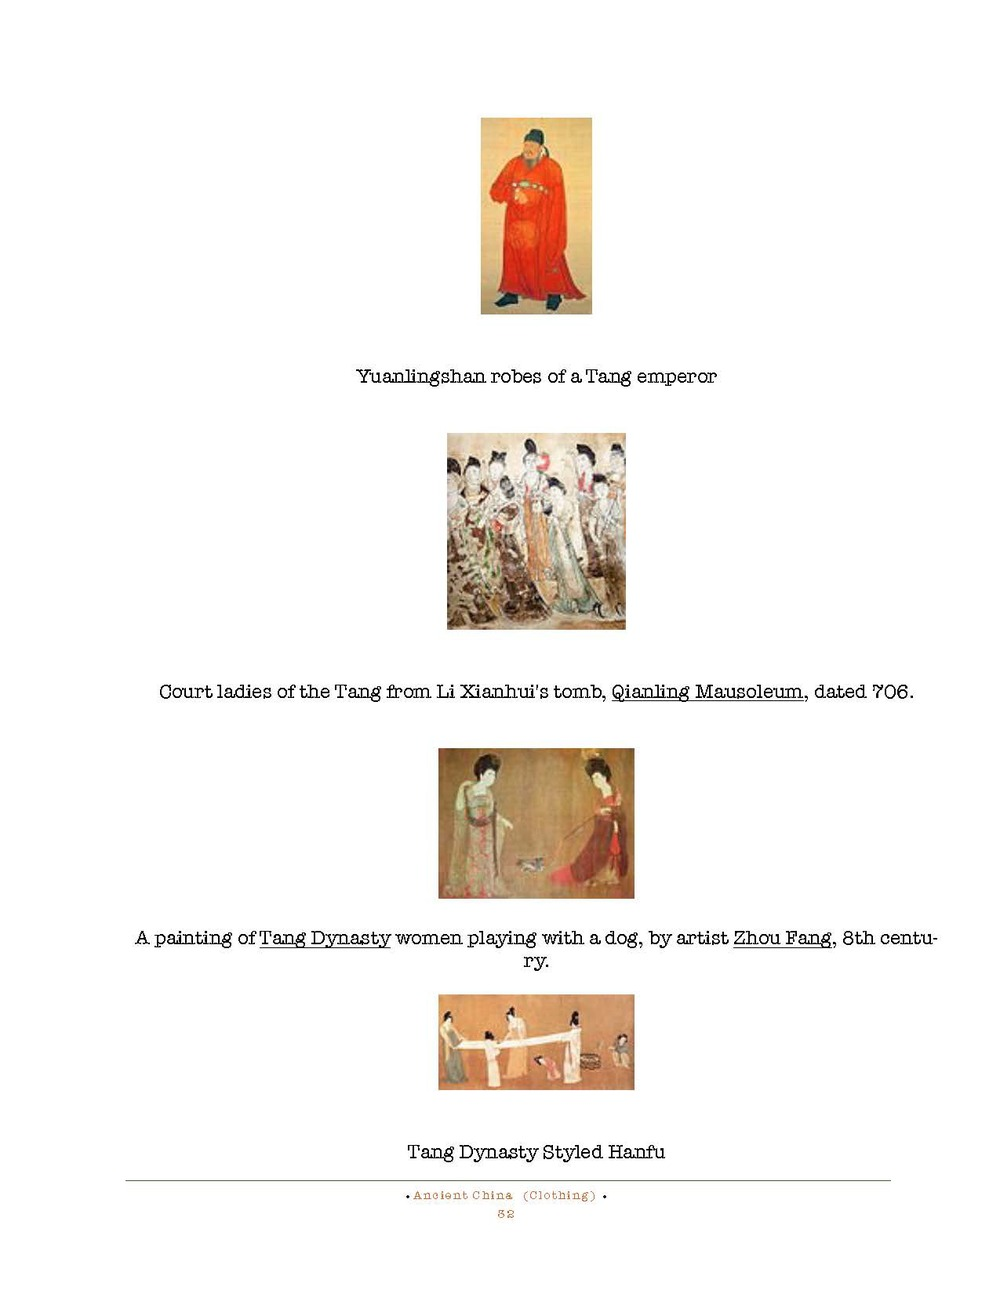 HOCE- Ancient China Notes (clothing)_Page_32.jpg